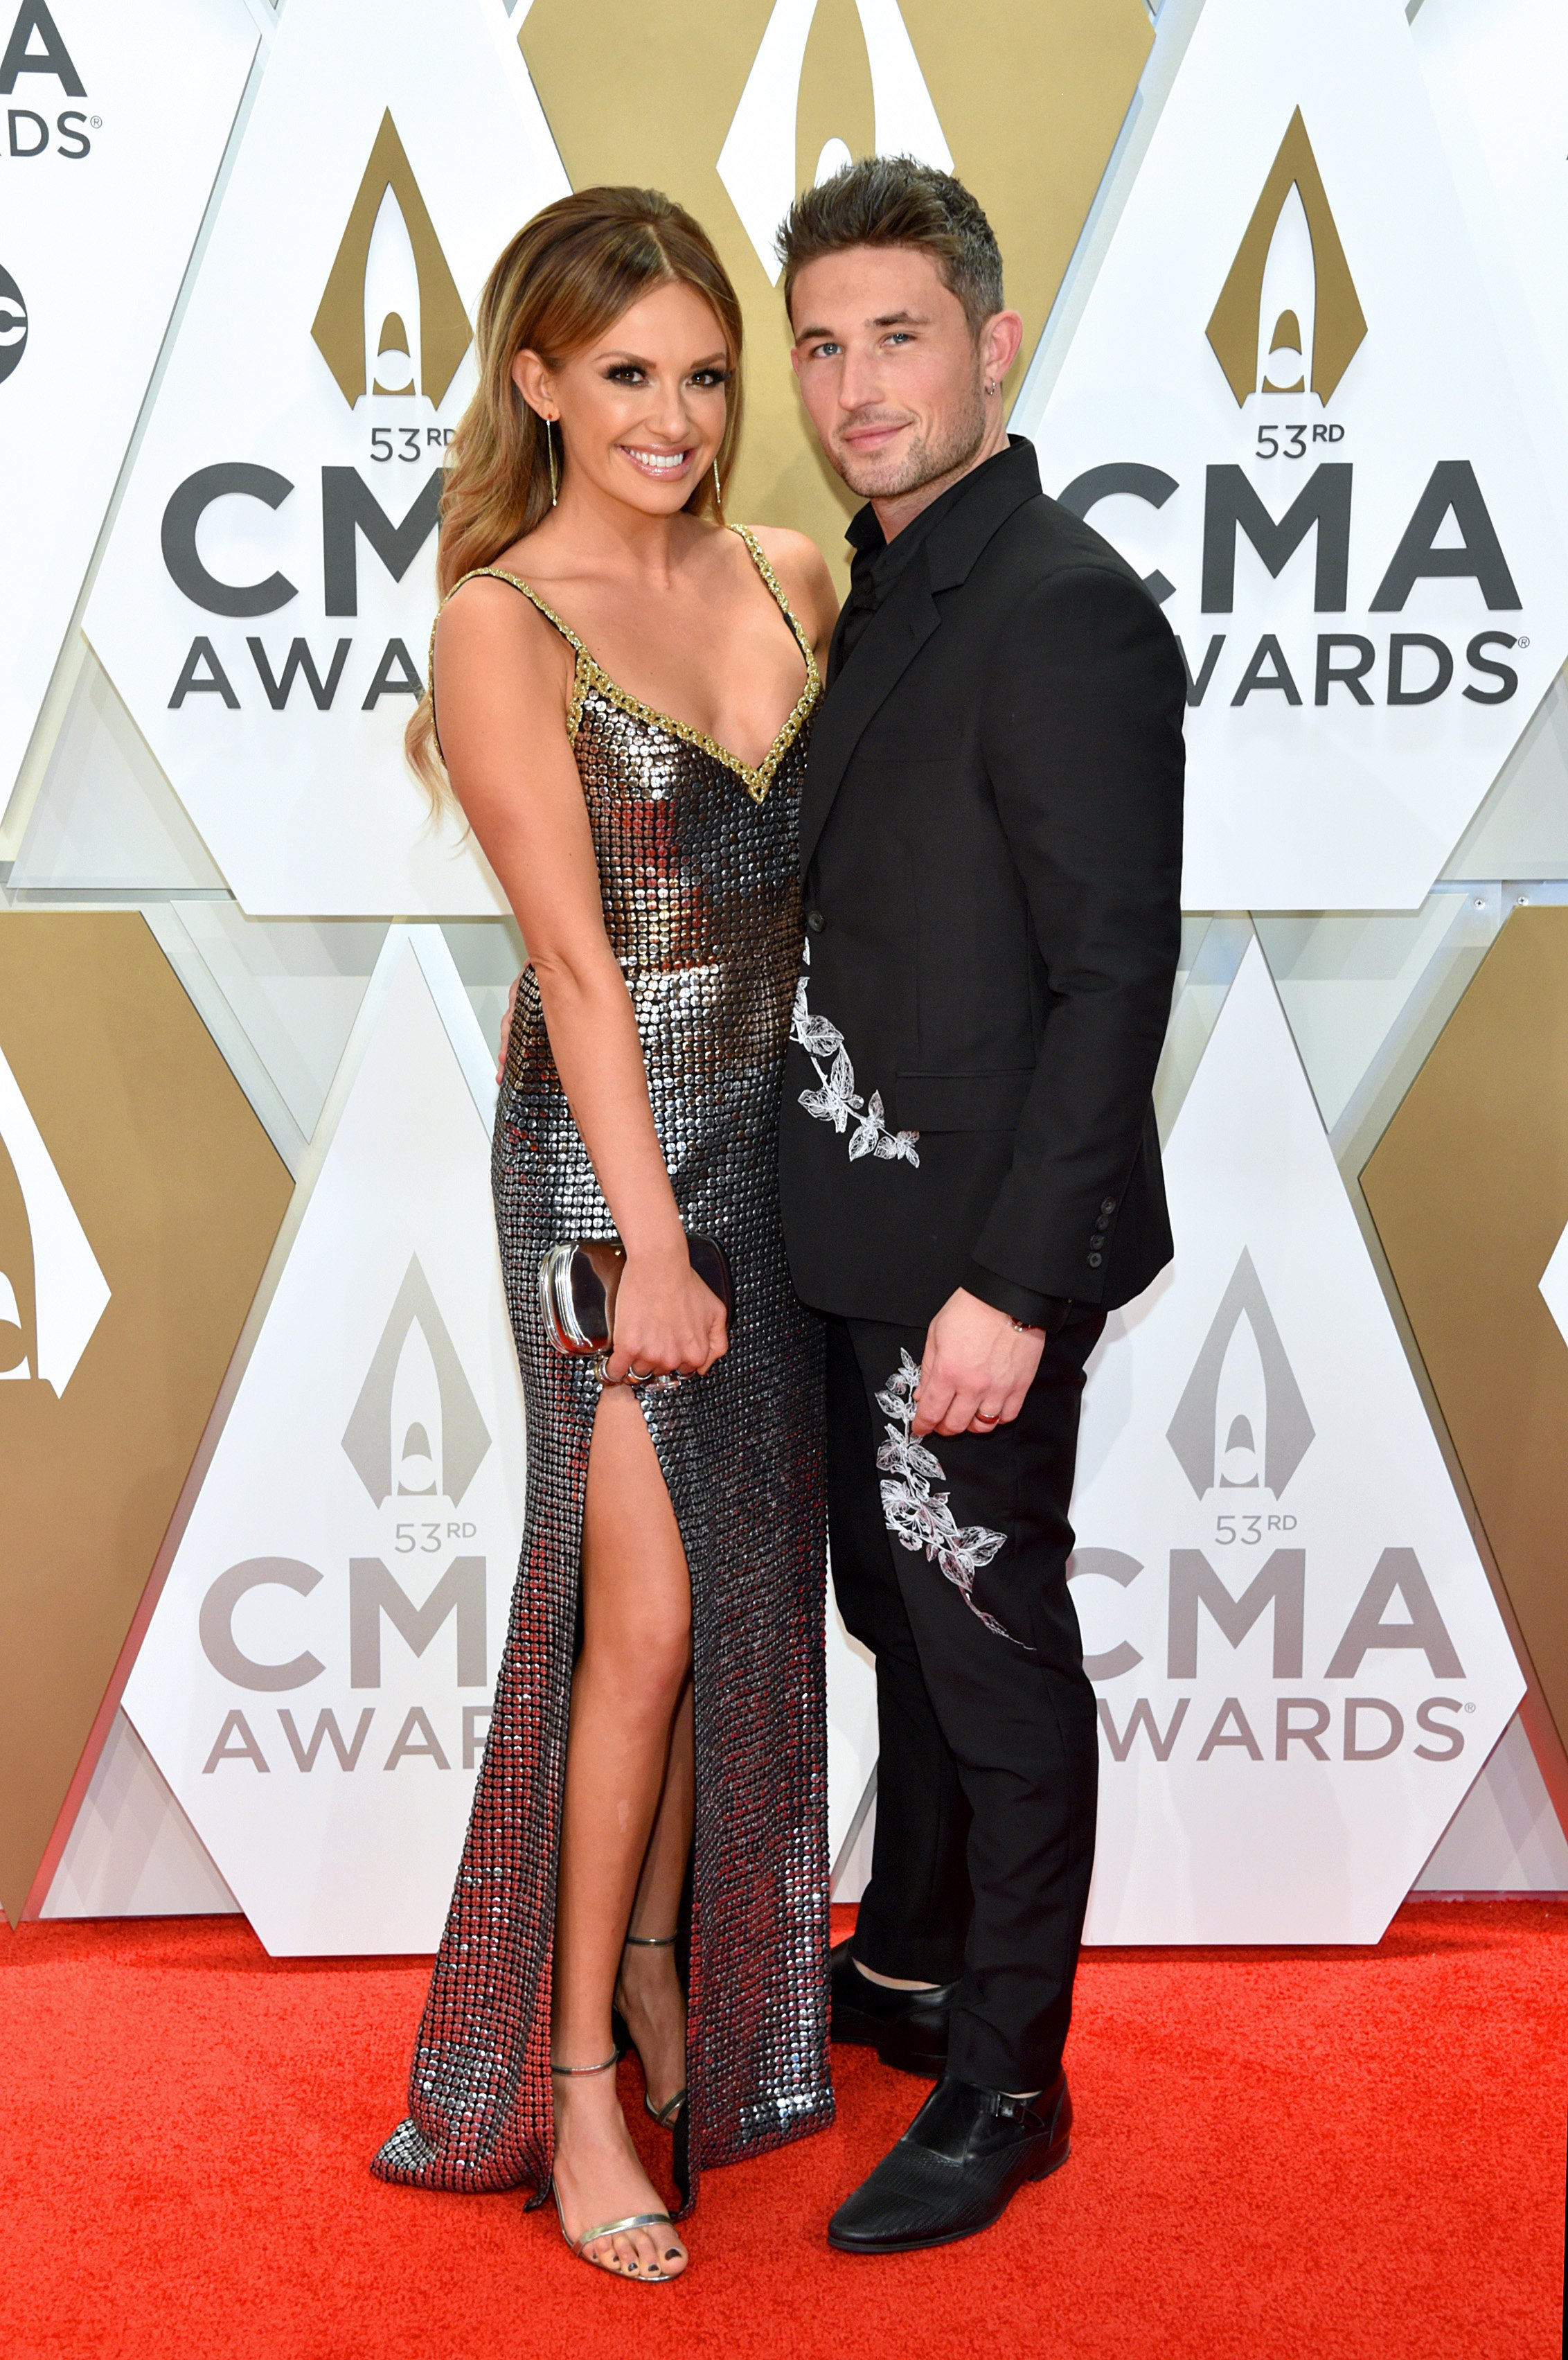 Carly Pearce and Michael Ray attend the 53rd annual CMA Awards on November 13, 2019, in Nashville, Tennessee. | Source: Getty Images.